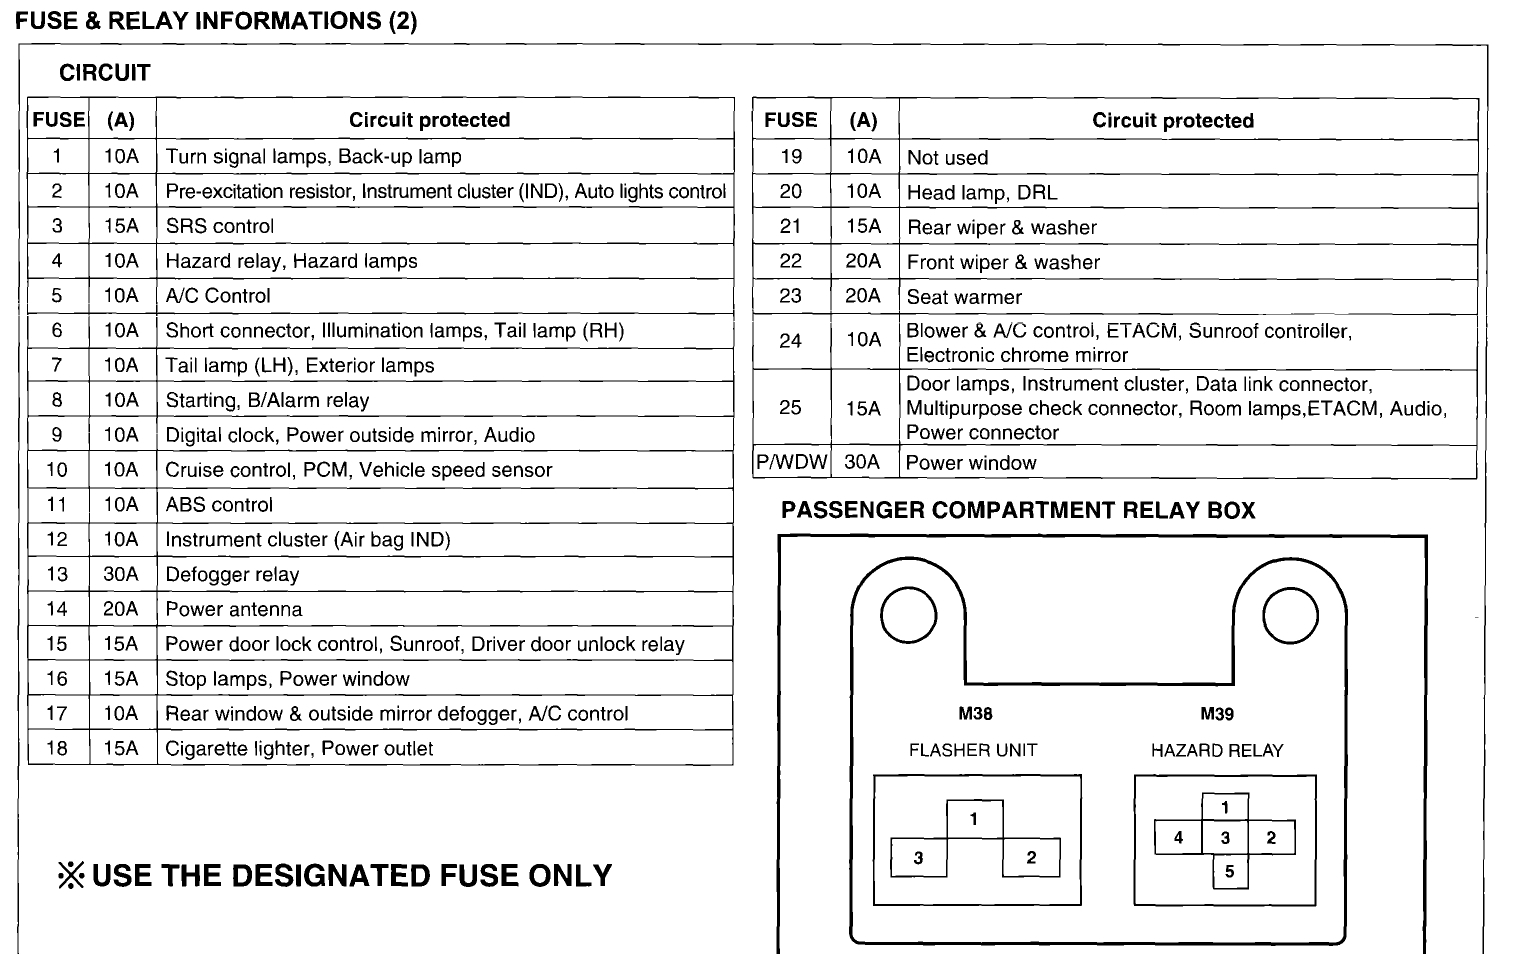 original signal light wiring diagram 2002 hyundai elantra 2006 hyundai 2002 xg350 hyundai wiring radio diagram at cos-gaming.co